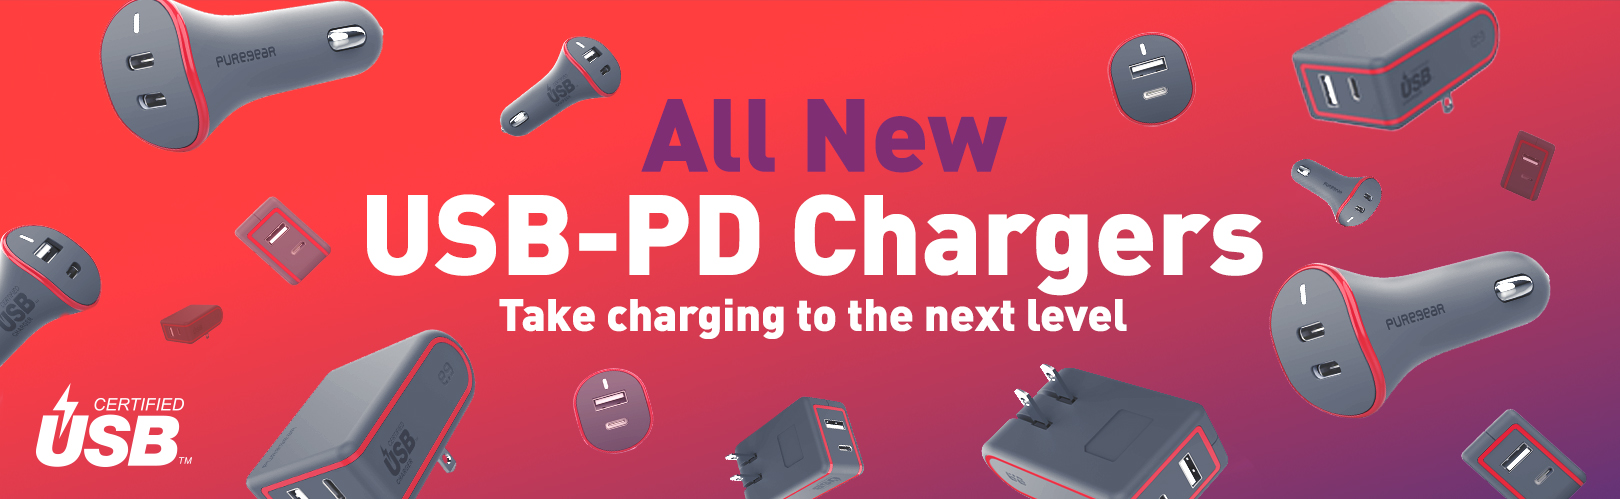 PD Chargers